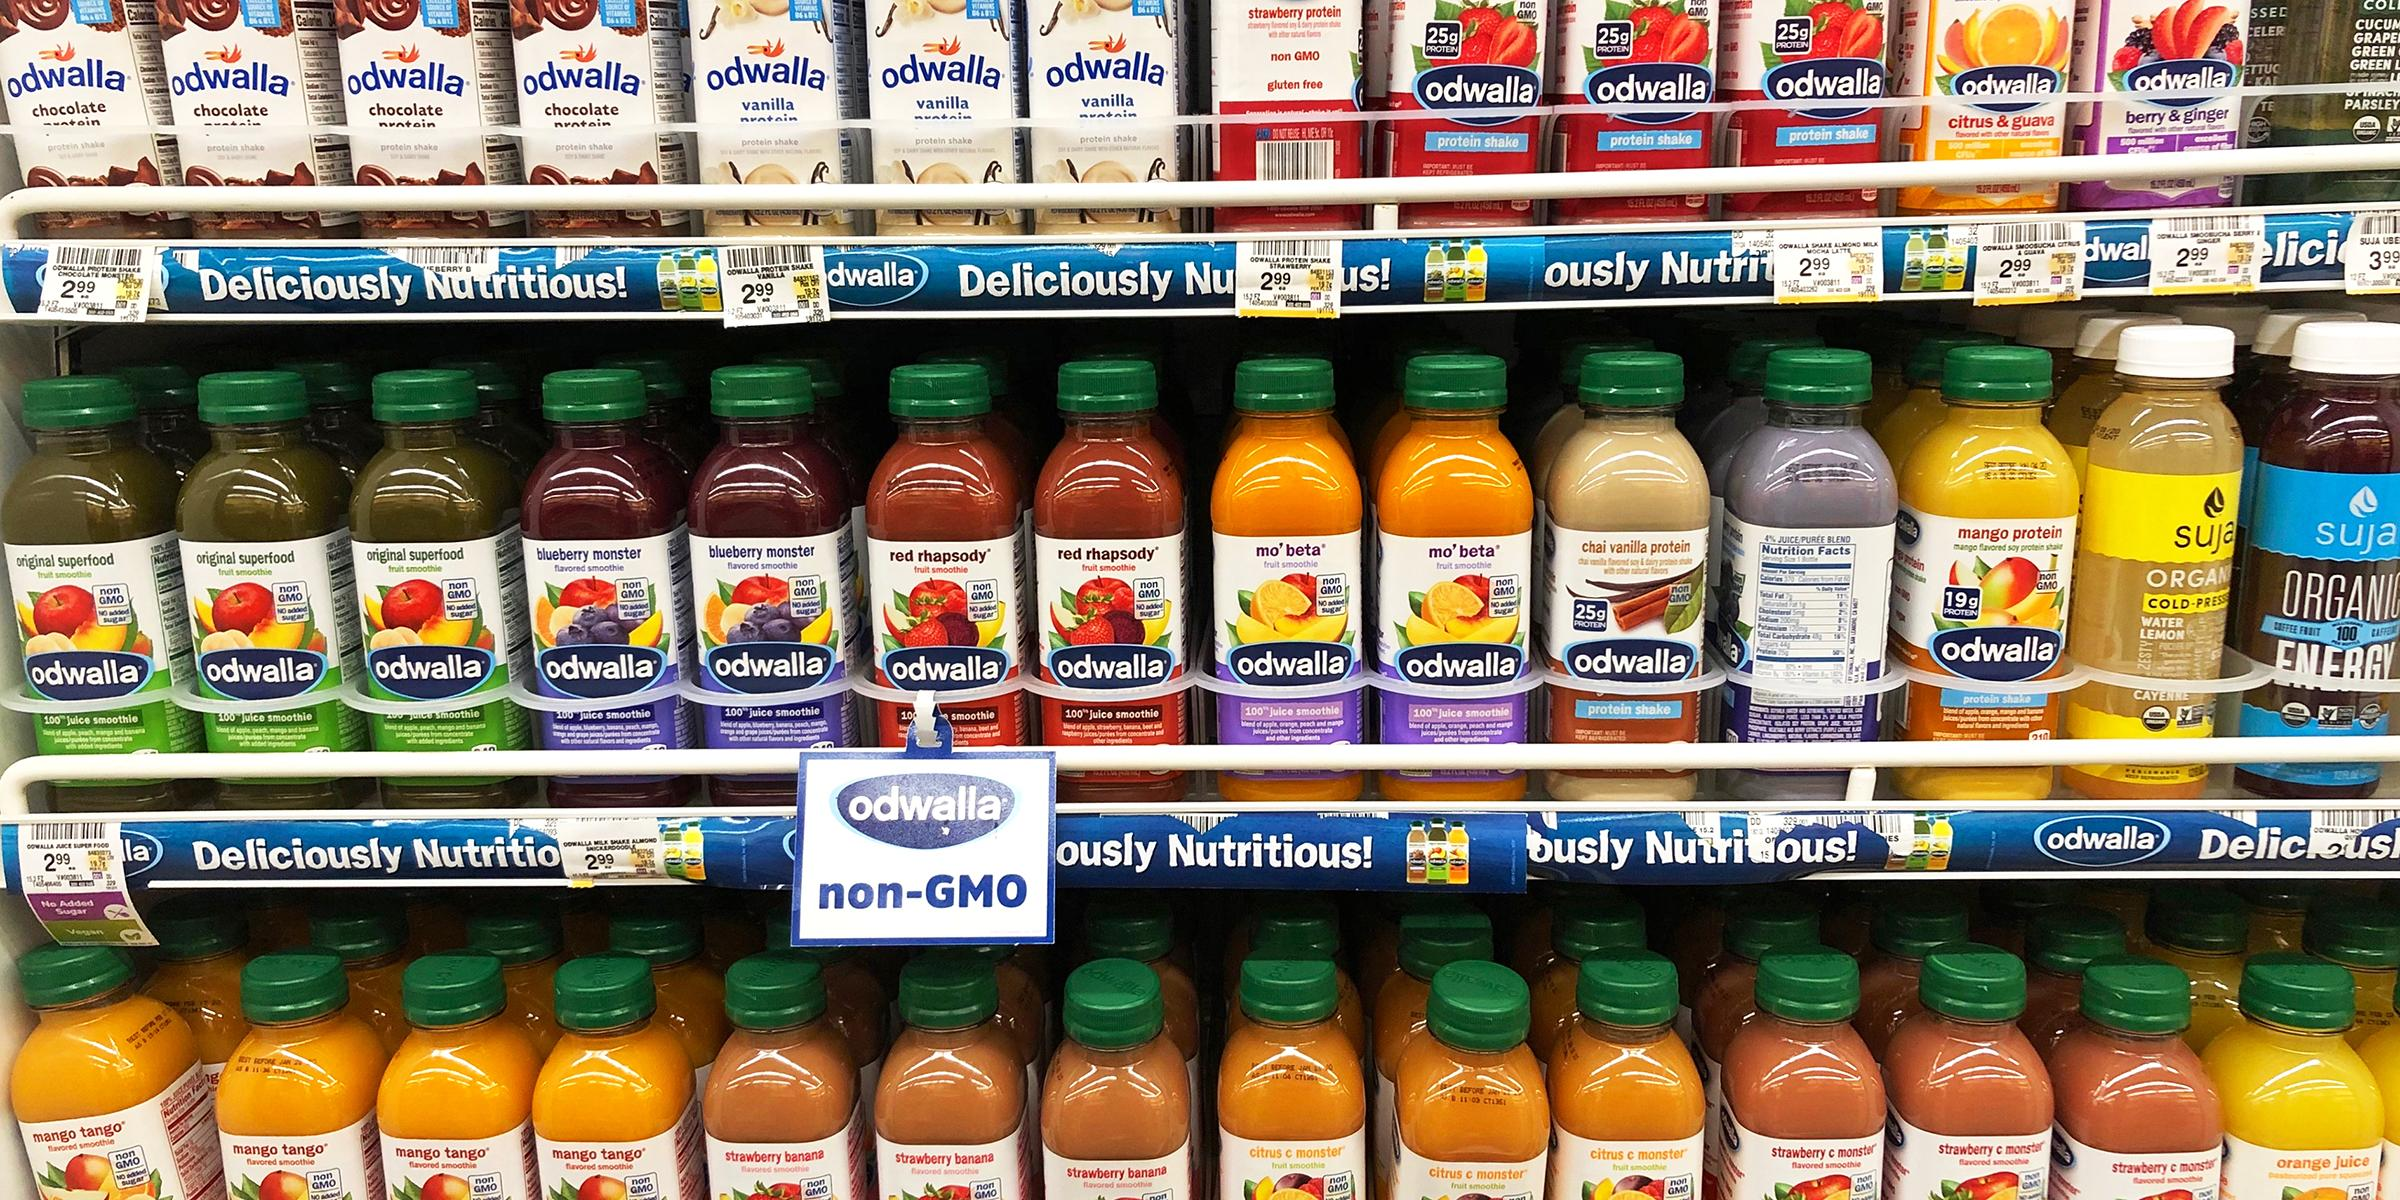 The Odwalla juice brand is getting shut down by Coca-Cola